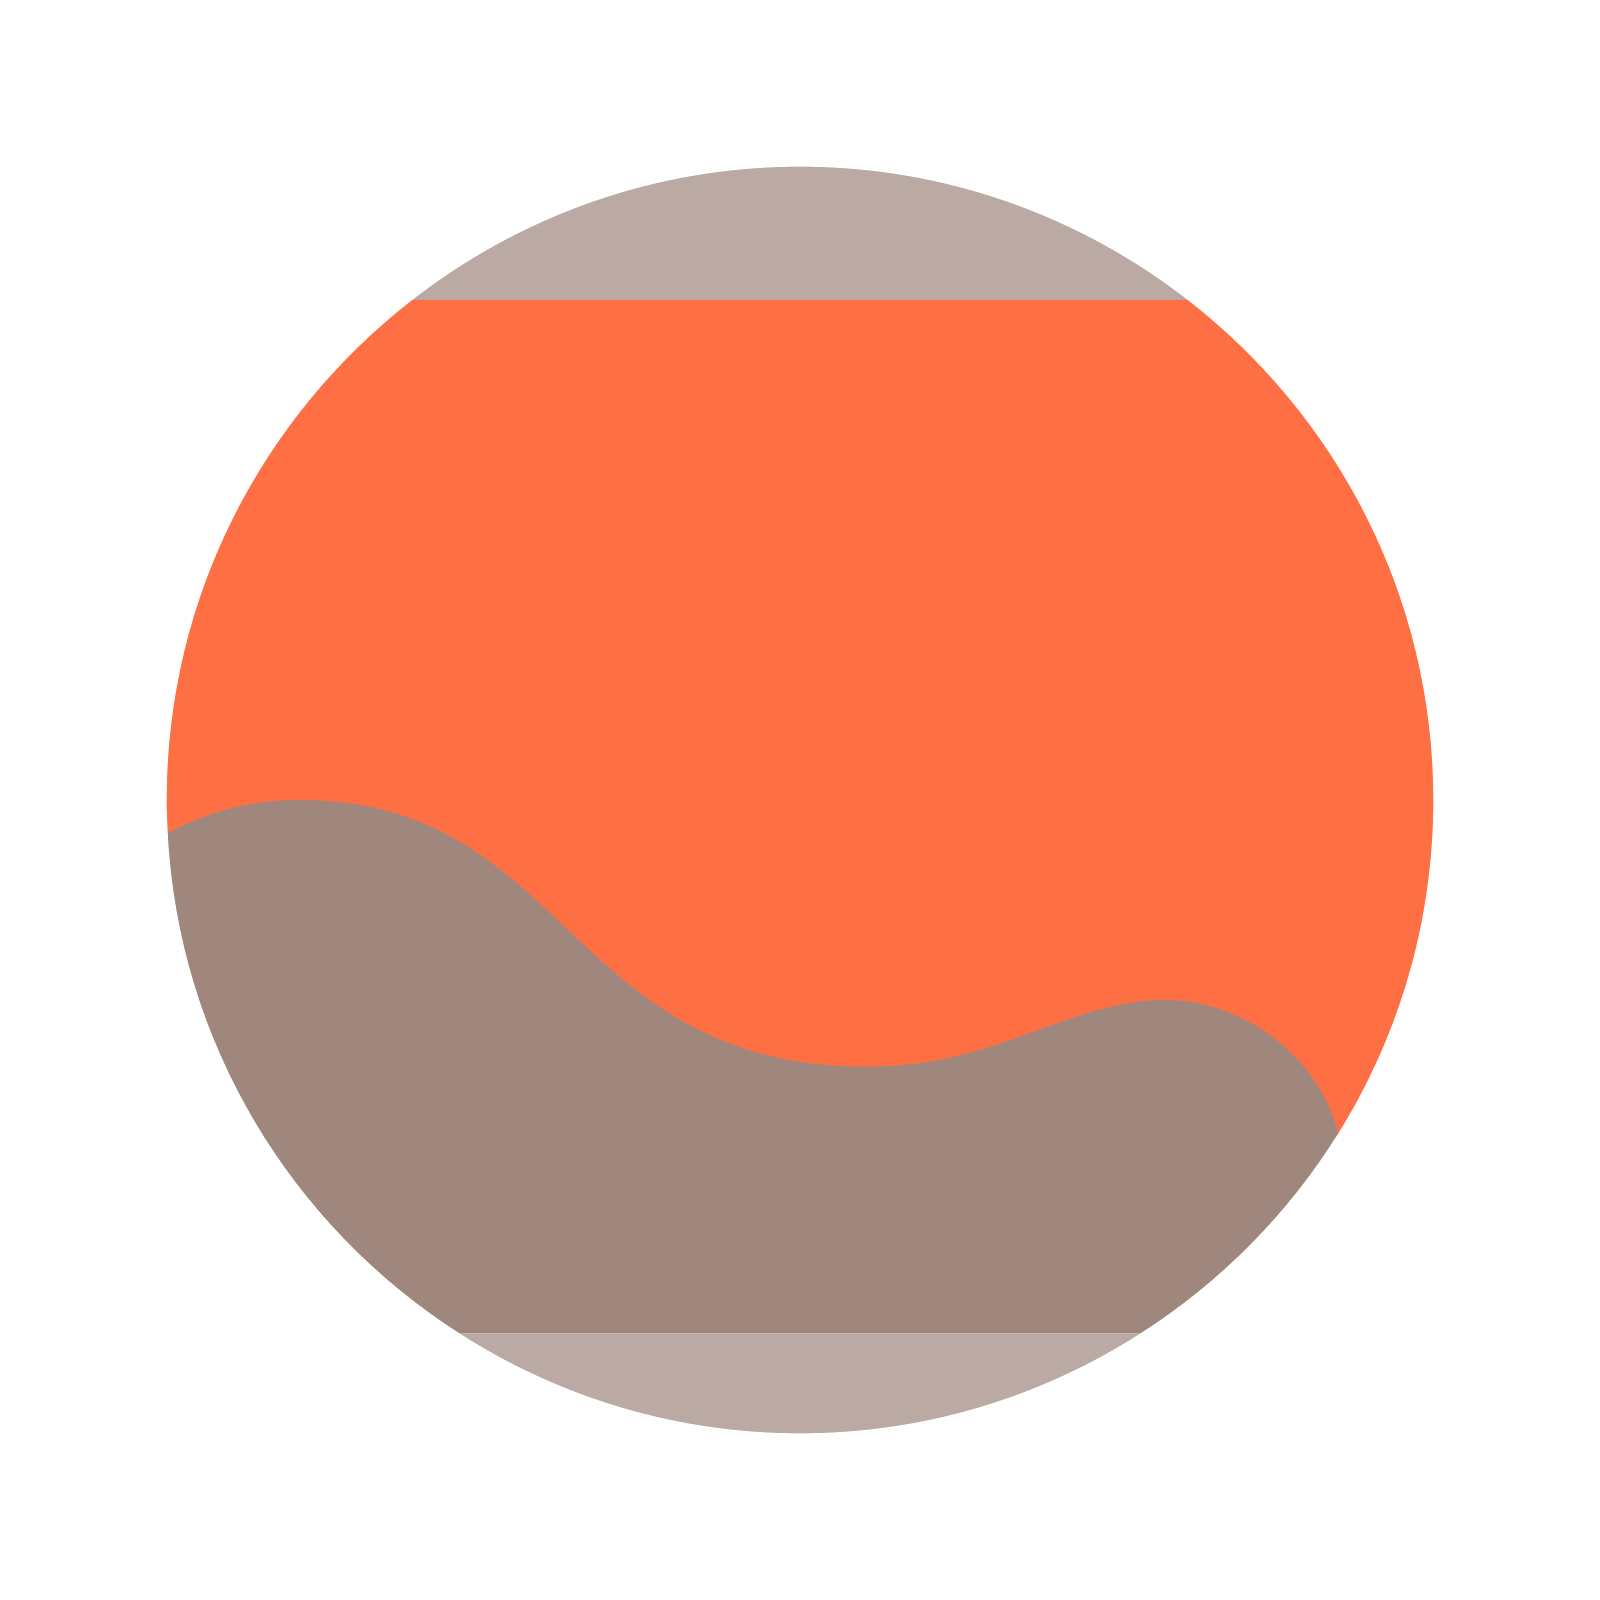 Planet icon free download. Mars vector svg free